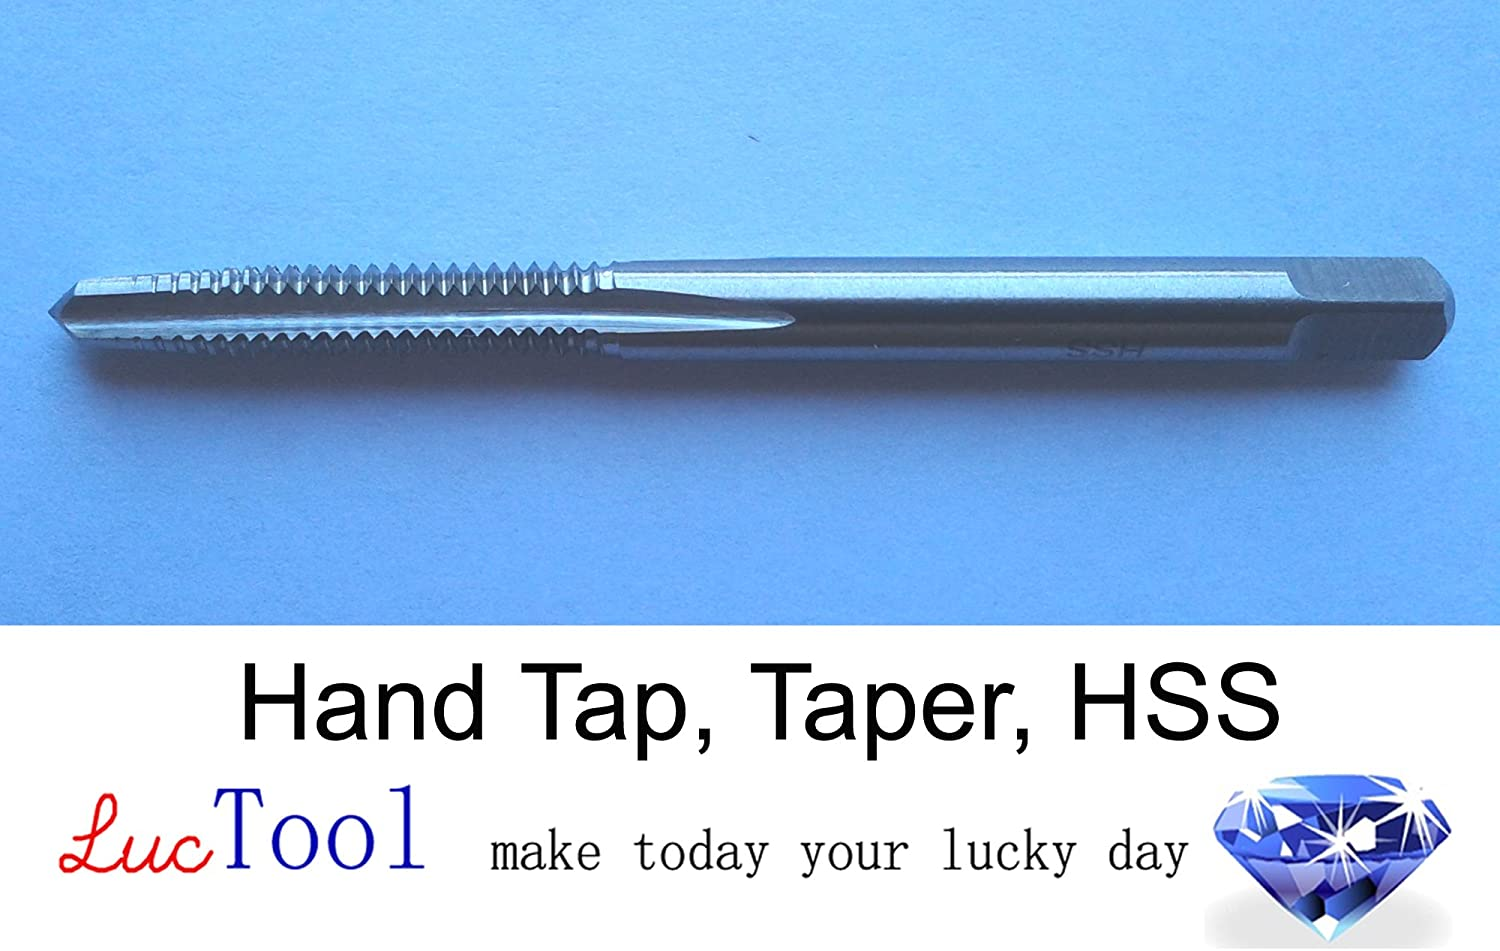 Luctool 7//8-9 UNC Hand Tap Bottoming GH4 Limit 4 Flute HSS Bottom Chamfer Uncoated Bright Finished Ground Thread Luctool Provides Premium Quality Hand Tools for Metal Threading.